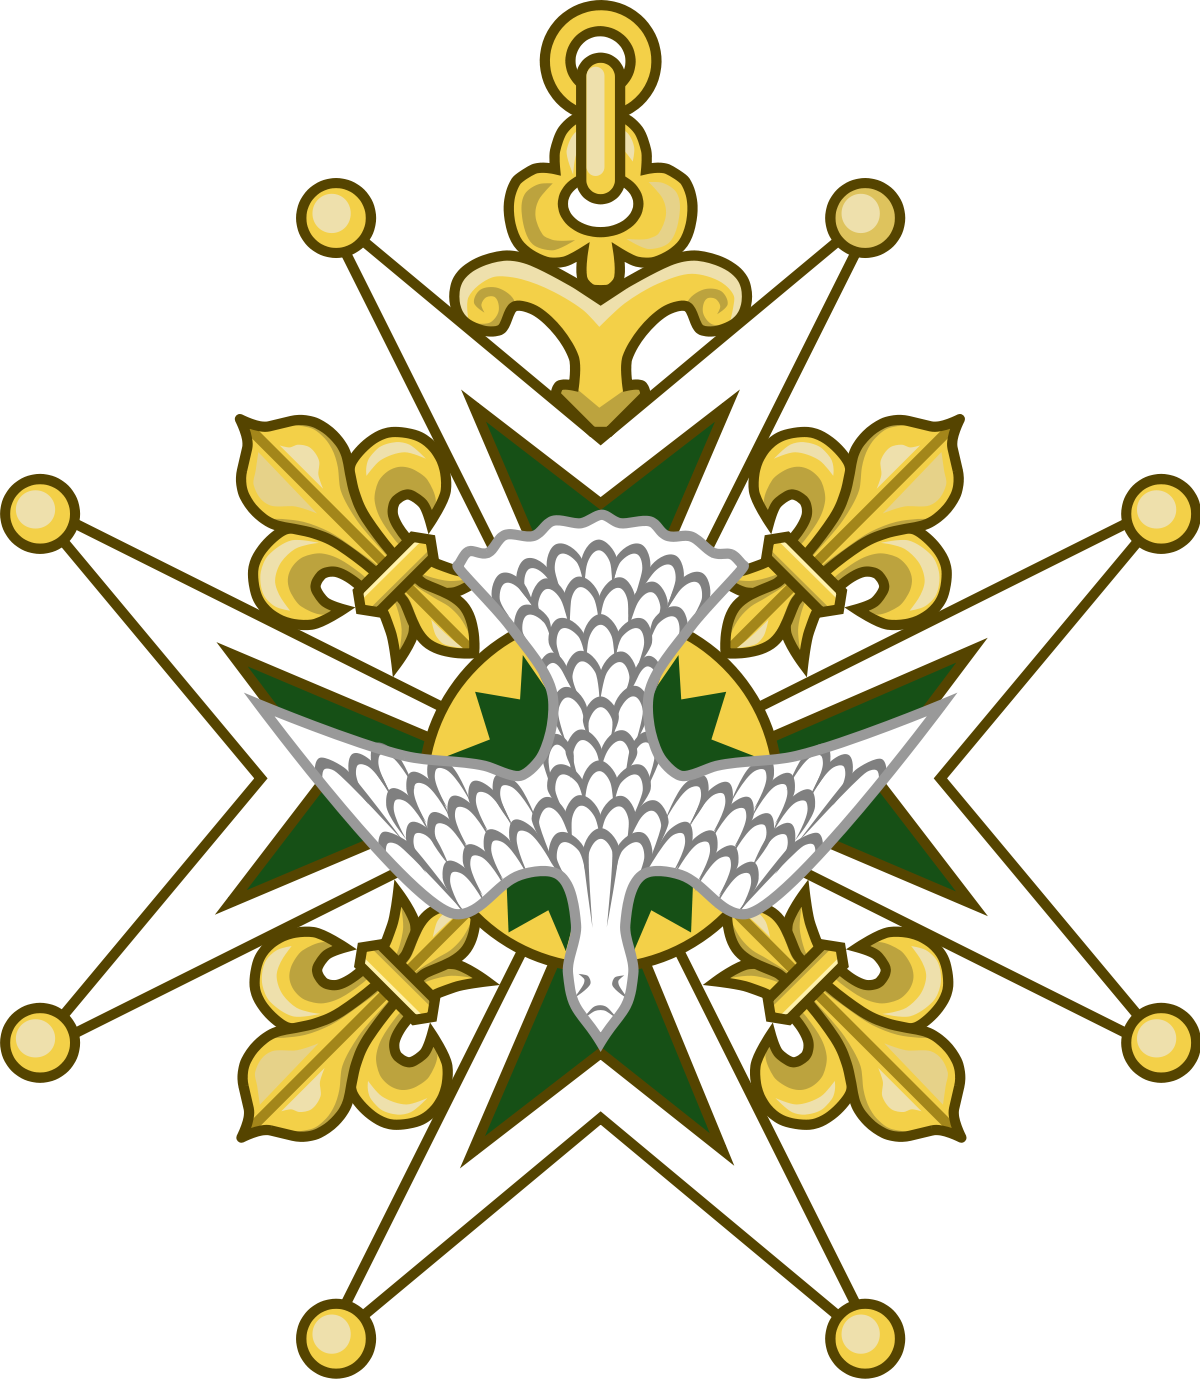 Royal drawing cross. Order of the holy